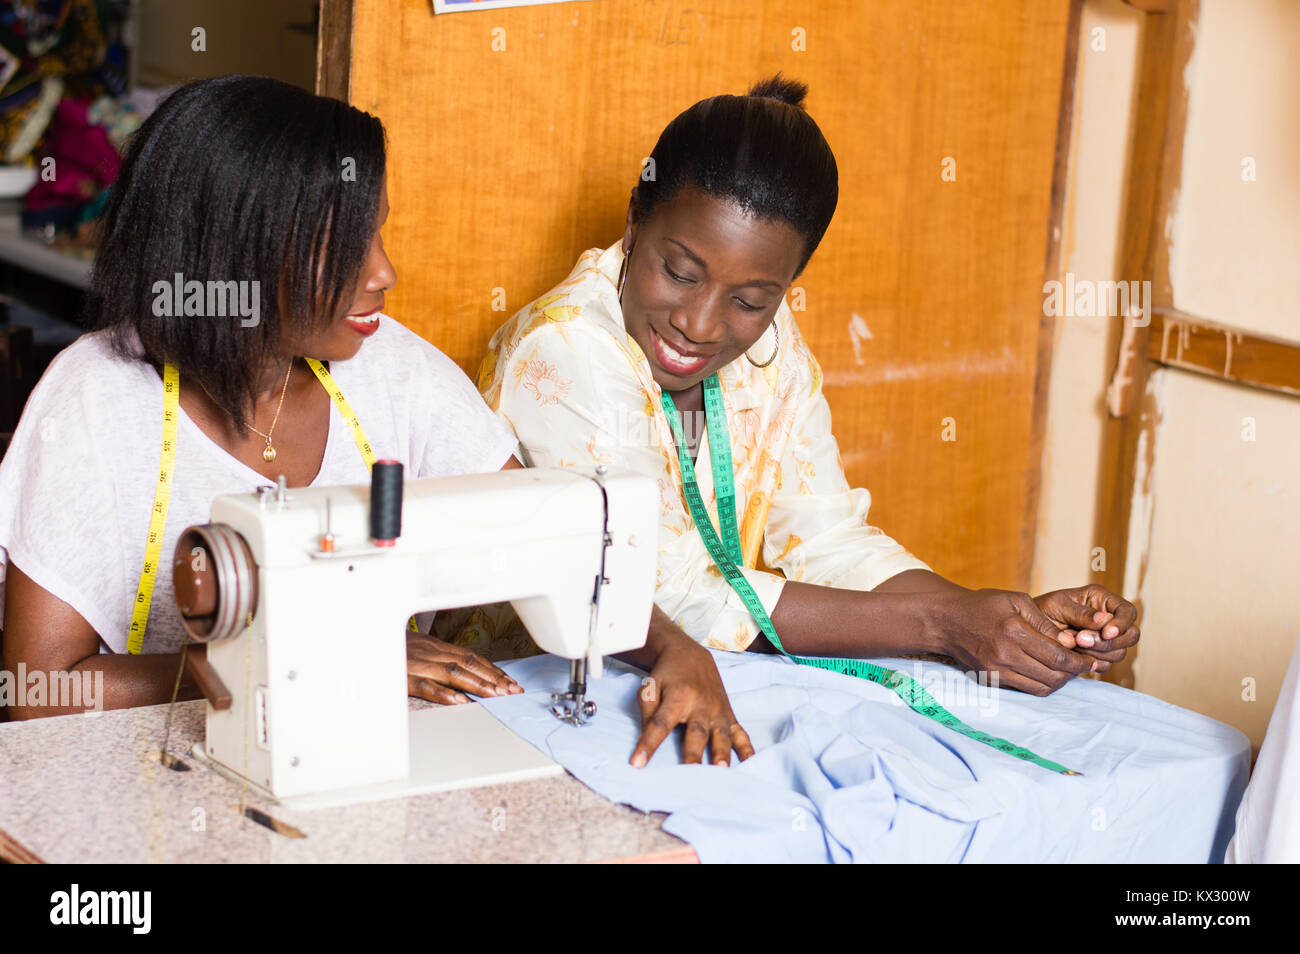 the student is happy to learn sewing and pleases her  teacher. - Stock Image